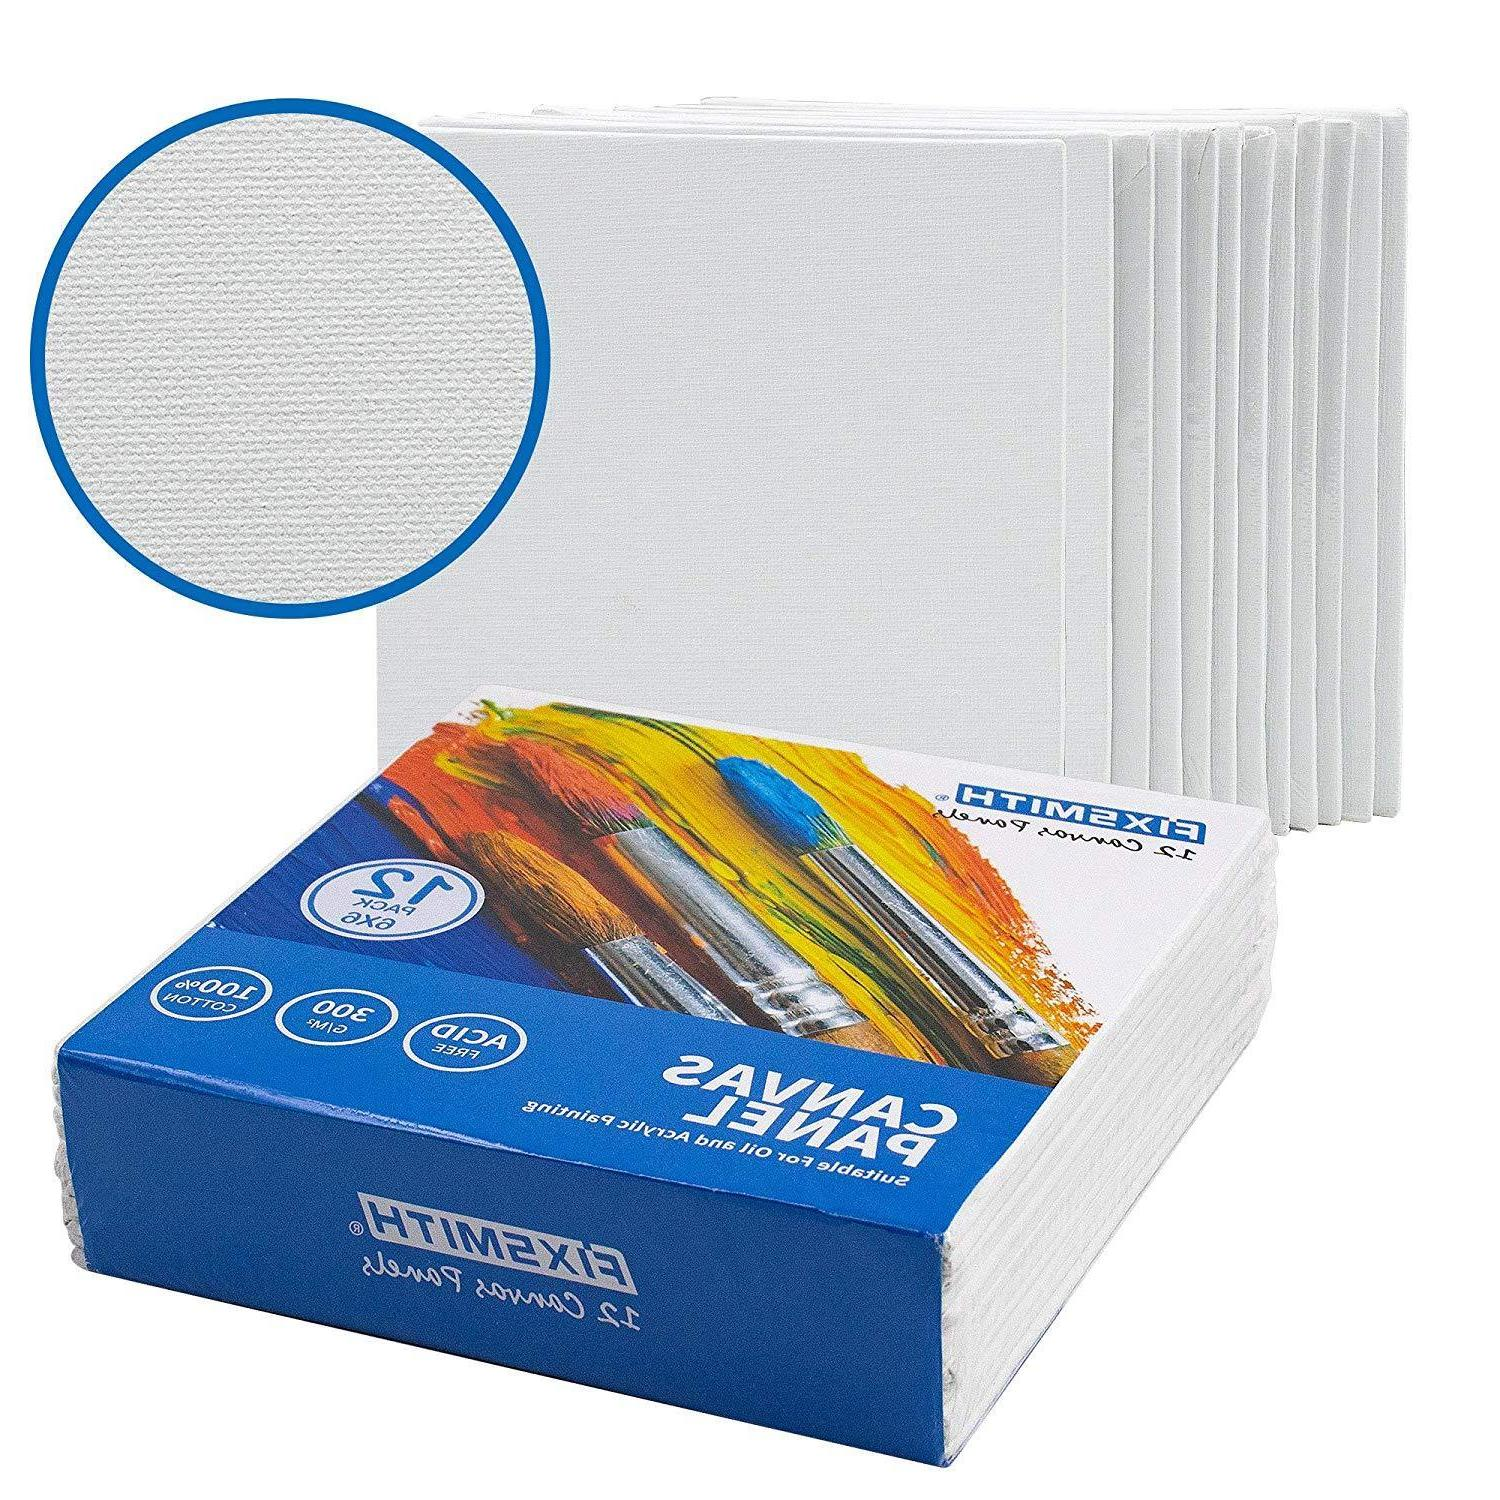 Artist Painting Canvas Boards,12 Cotton,Primed,Acid